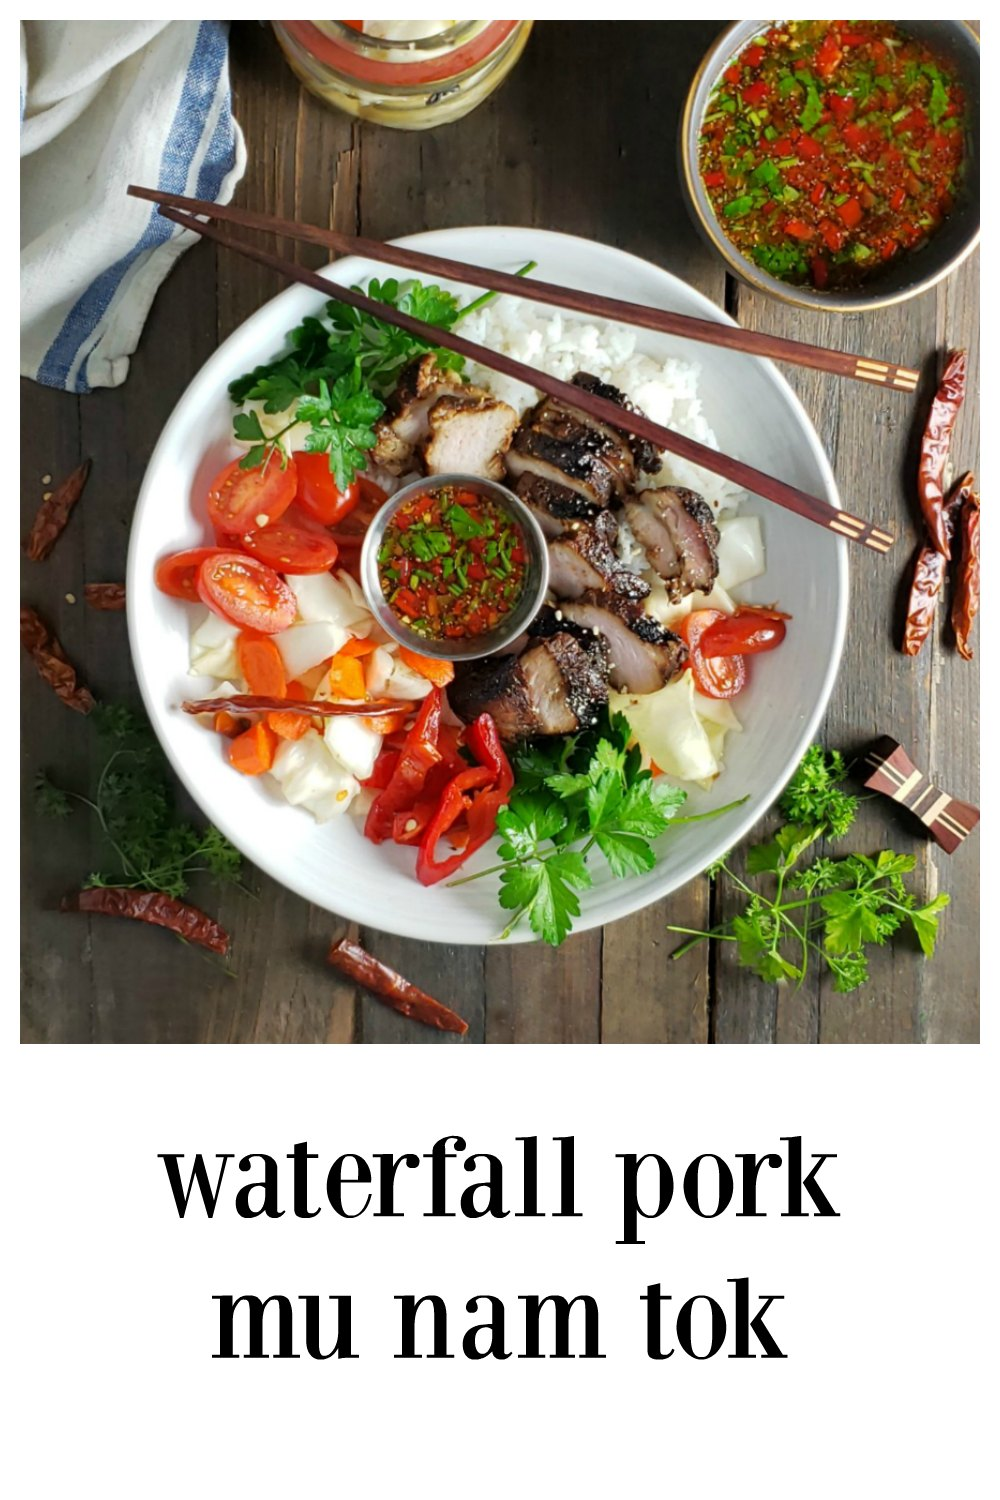 Waterfall Pork Mu Nam Tok is so simple & so crazy good everyone will go nuts! And you're gonna look like a hero. Serve it with Fiery Tiger Cry Sauce. Mostly Pantry Ingredients - Don't sweat the herbs or the ingredients, I have substitutions if needed. #WaterfallPork #AsianRecipes #PantryRecipes